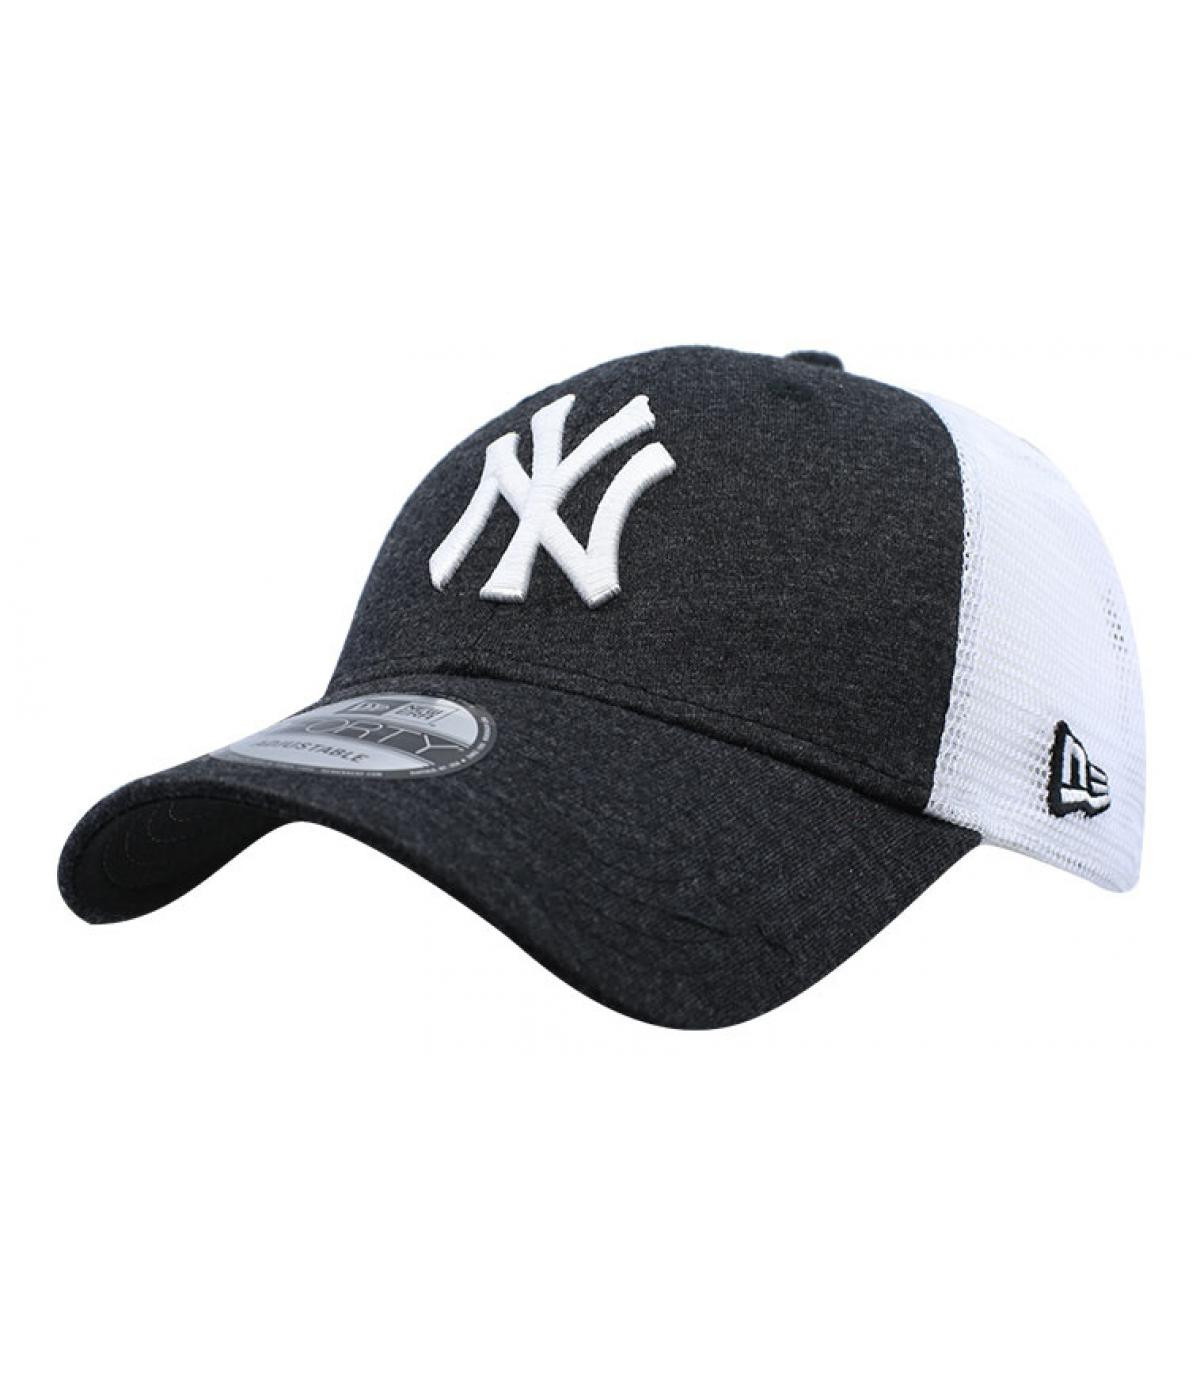 Details Trucker 9Forty Summer League NY black - afbeeling 2